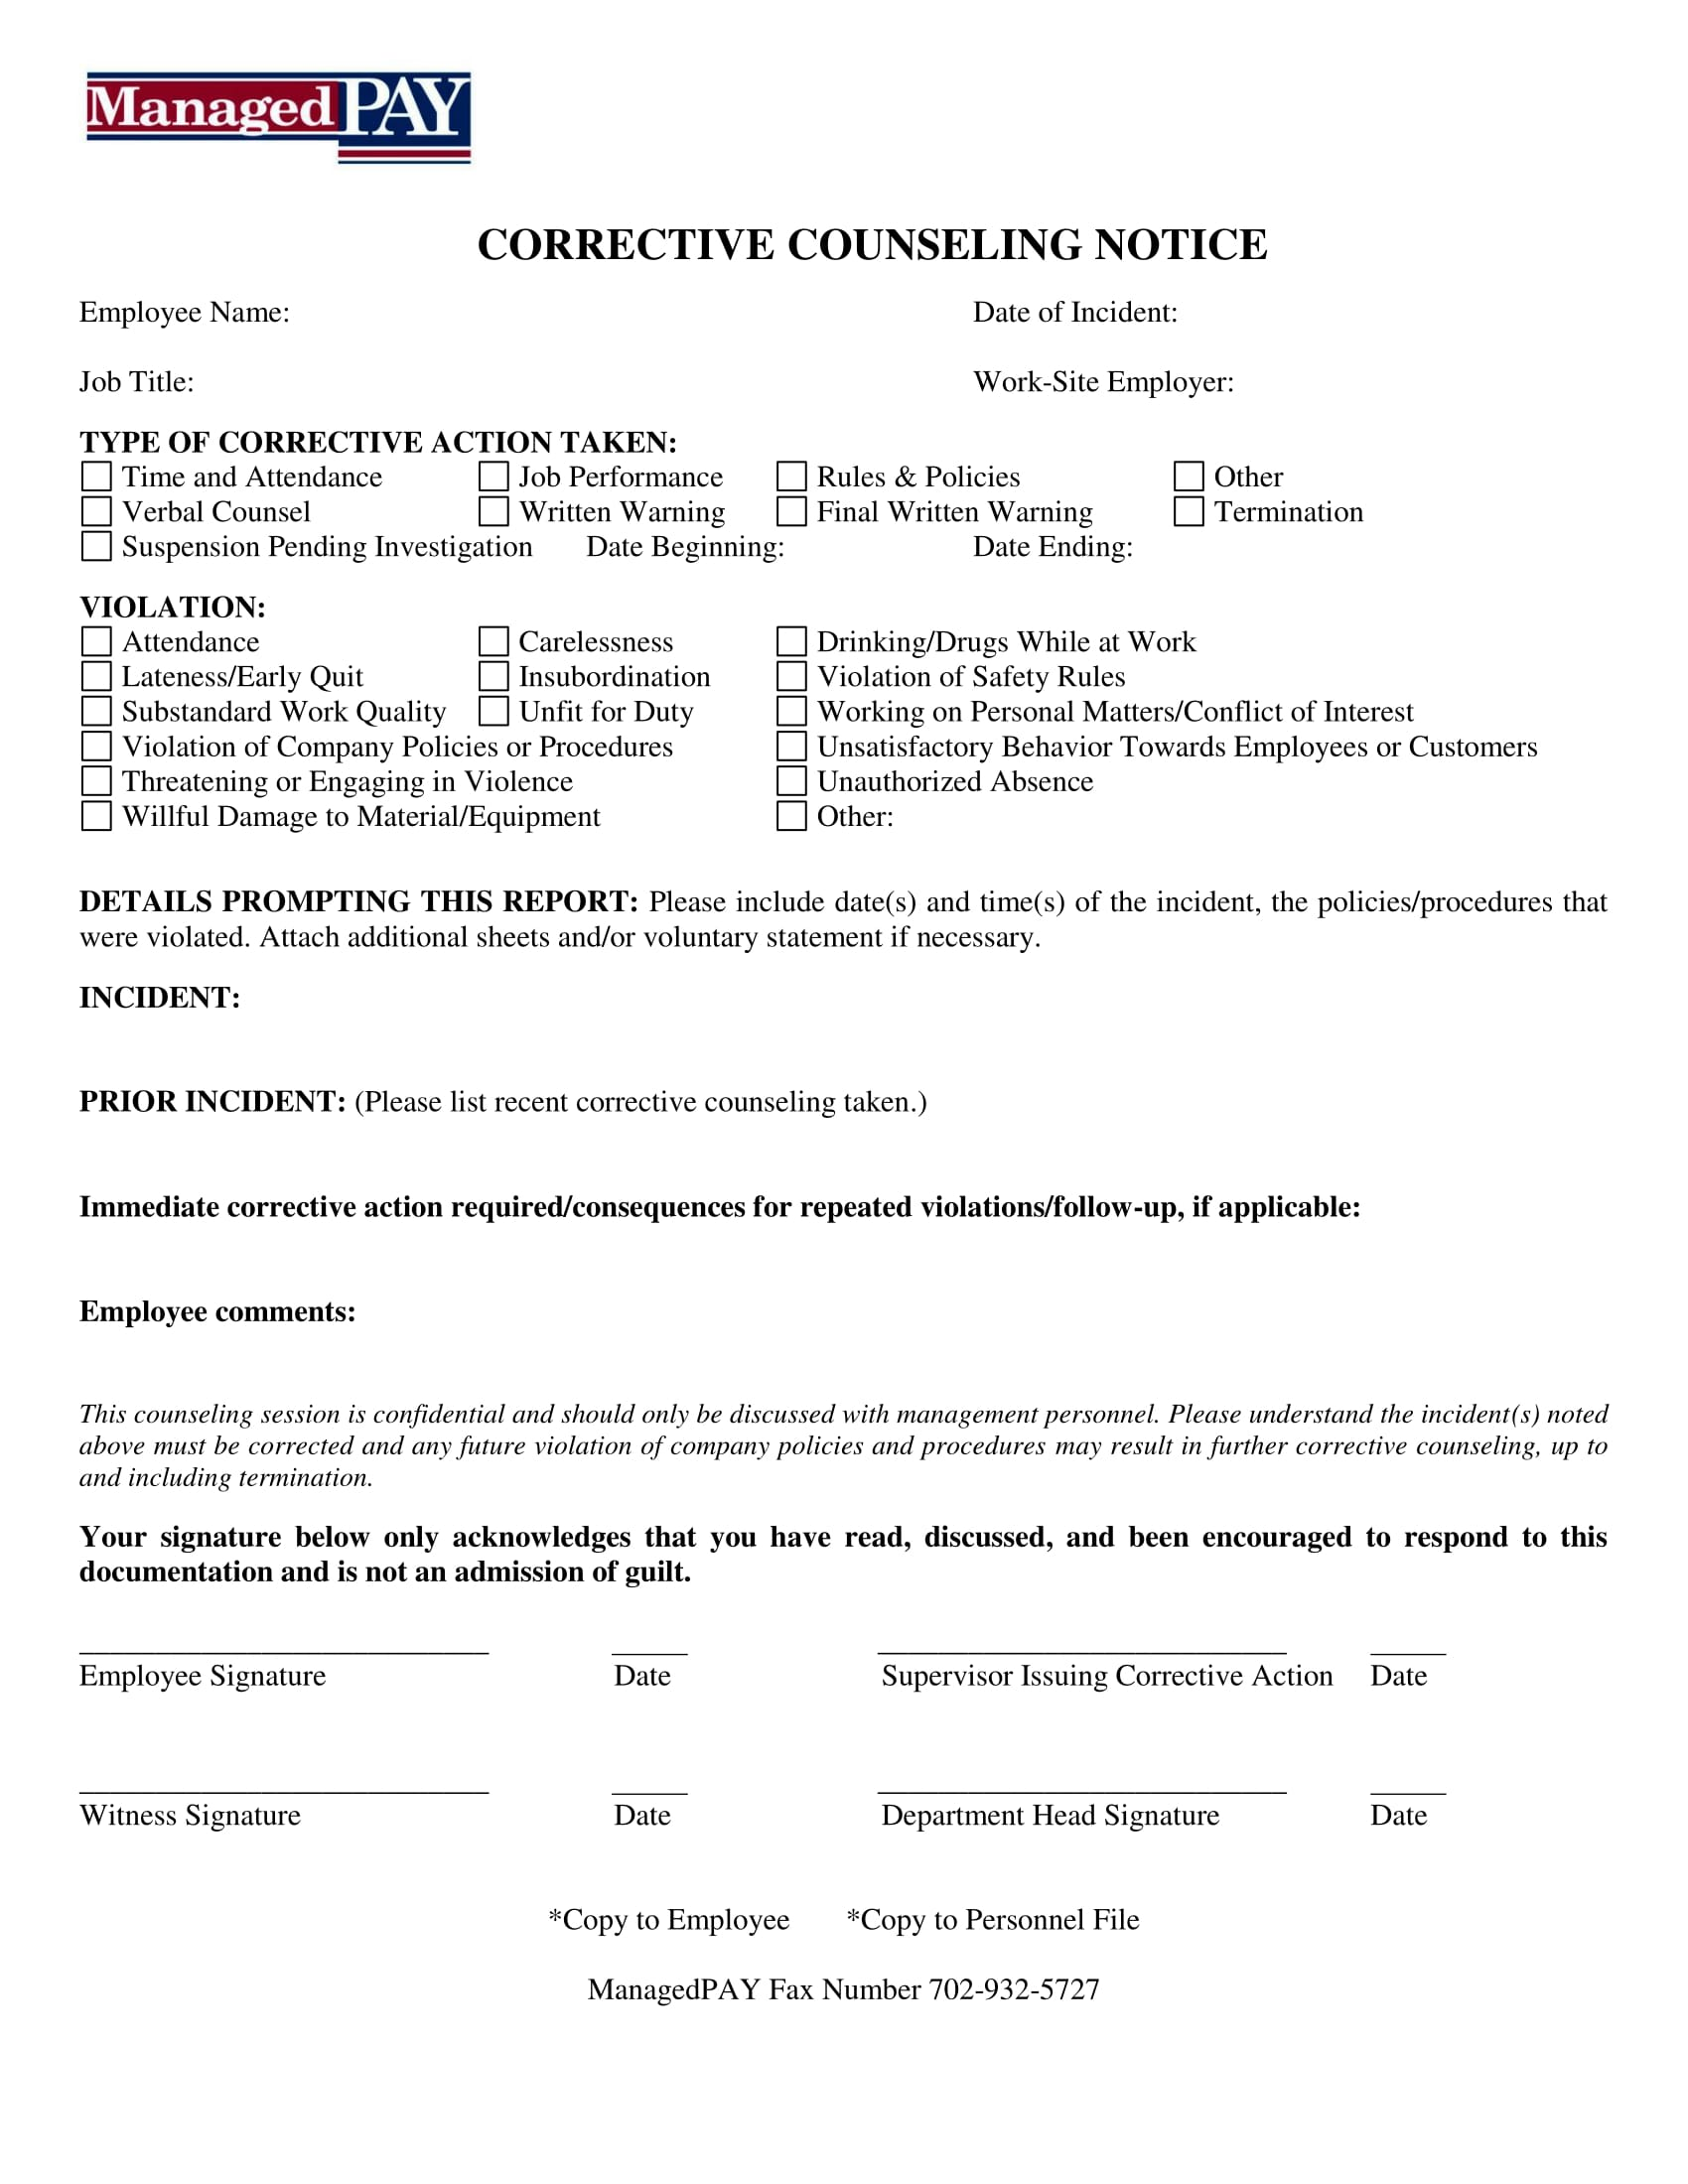 corrective counseling notice form 1